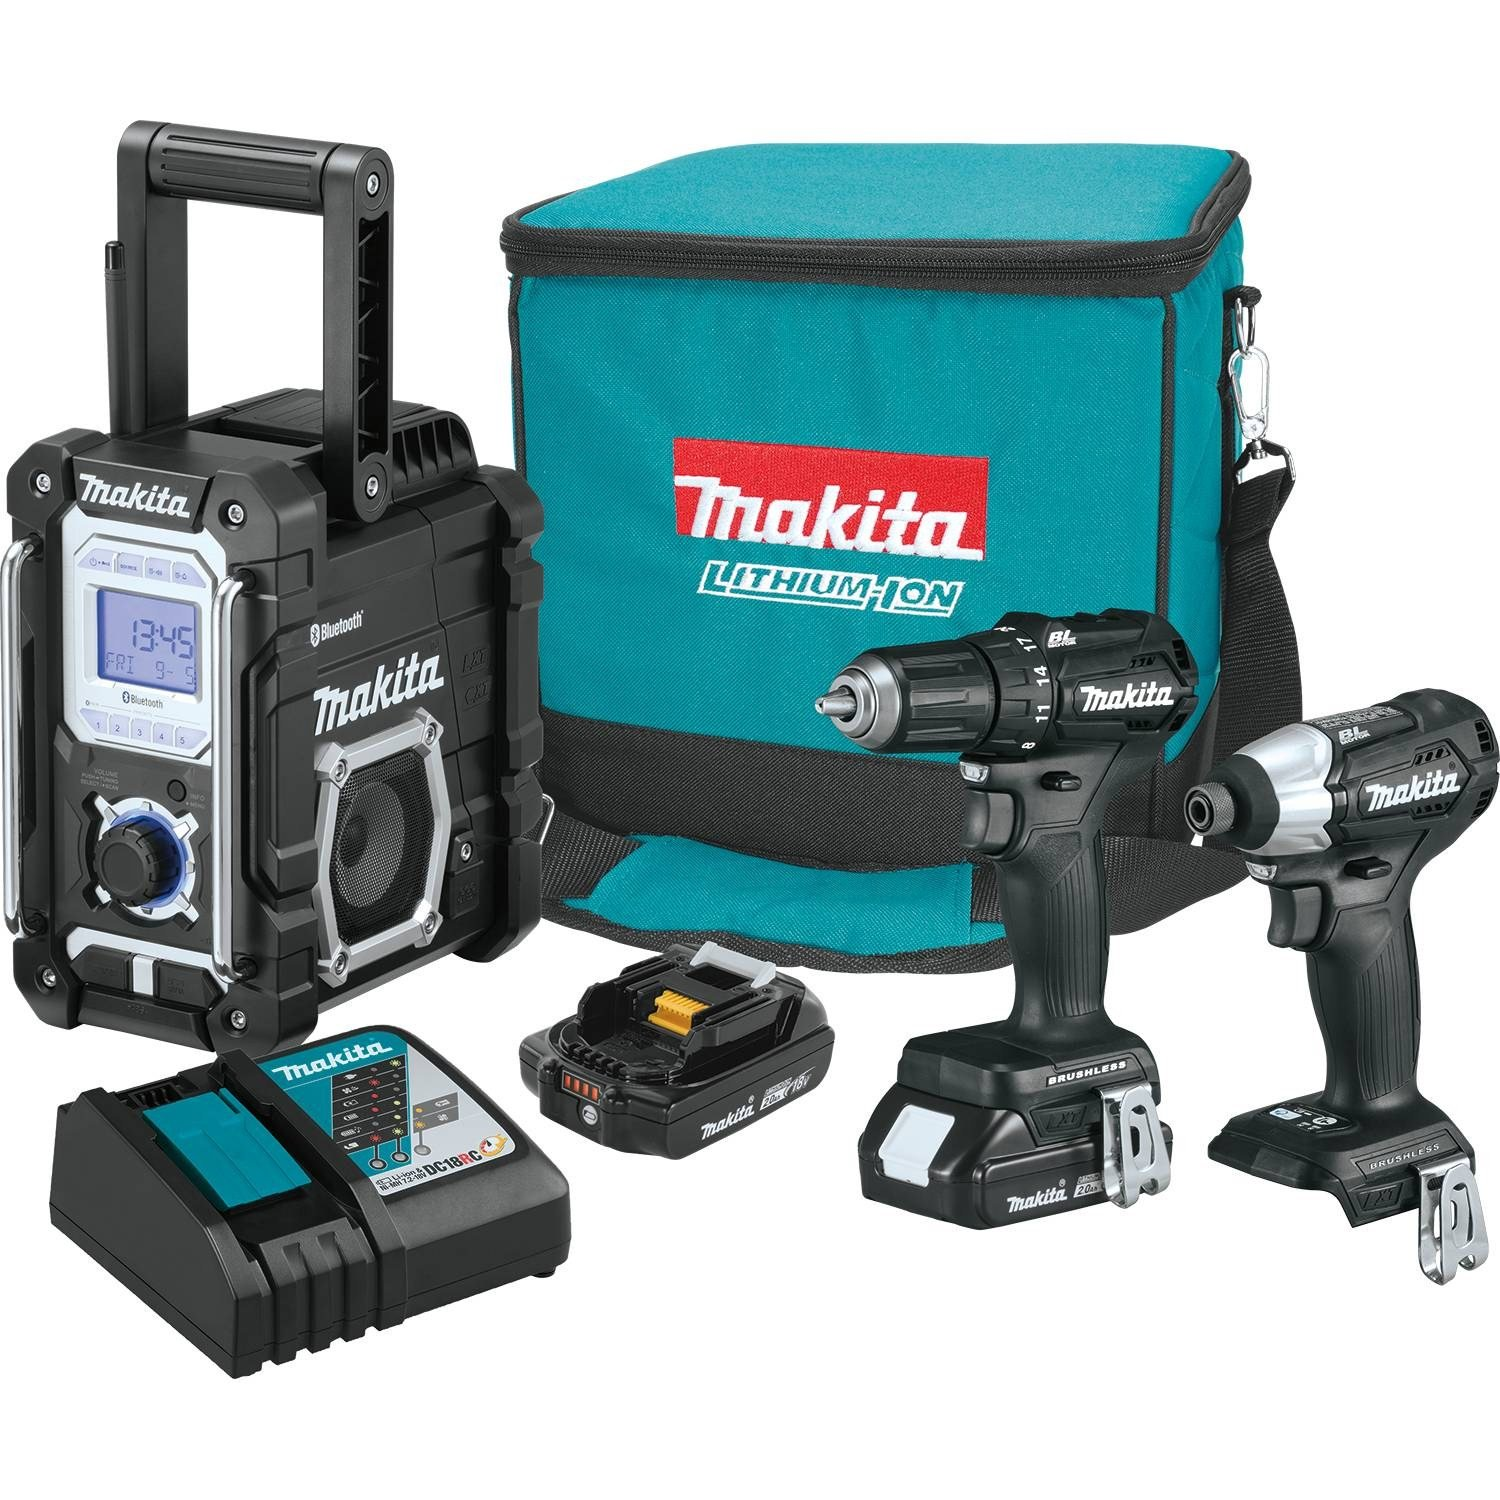 Makita CX301RB 2.0Ah 18V LXT Lithium-Ion Sub-Compact Brushless Cordless Combo Kit (3 Piece)